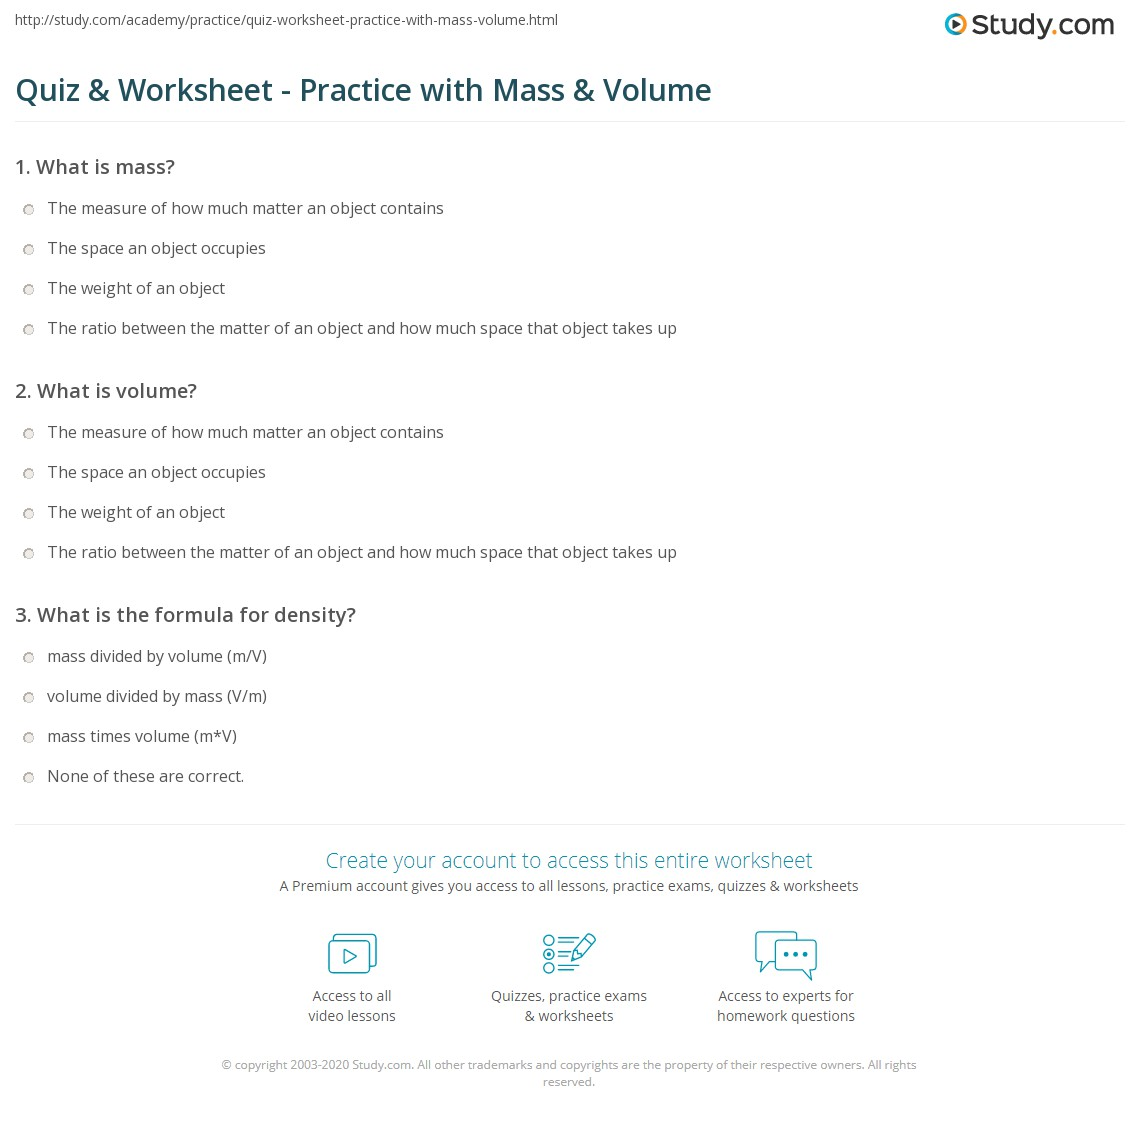 Quiz worksheet practice with mass volume study print mass and volume formulas unit conversion practice problems worksheet nvjuhfo Images